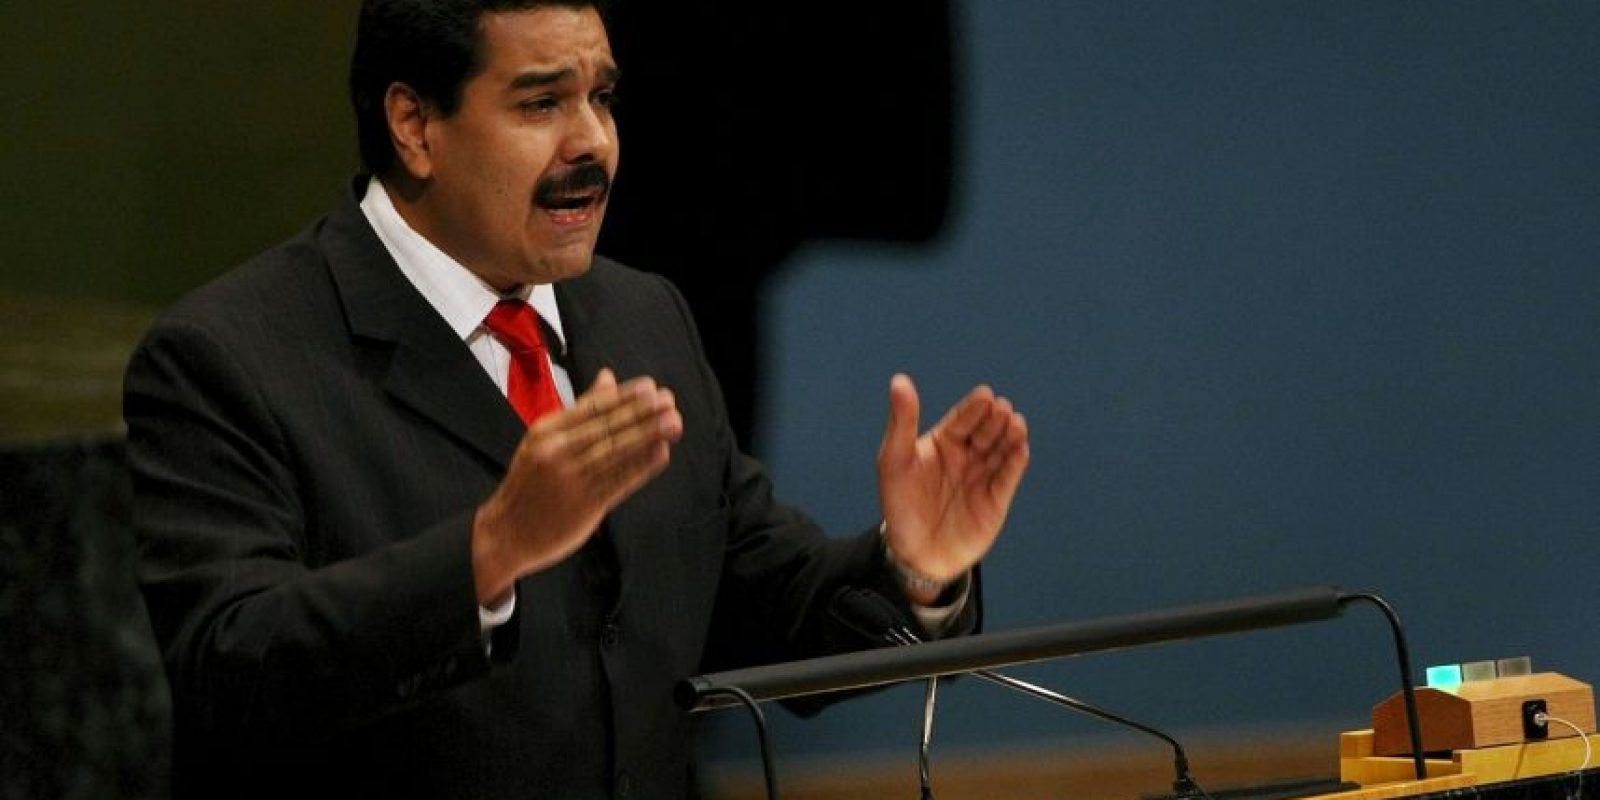 6. Nicolás Maduro, 2007 Foto: Getty Images